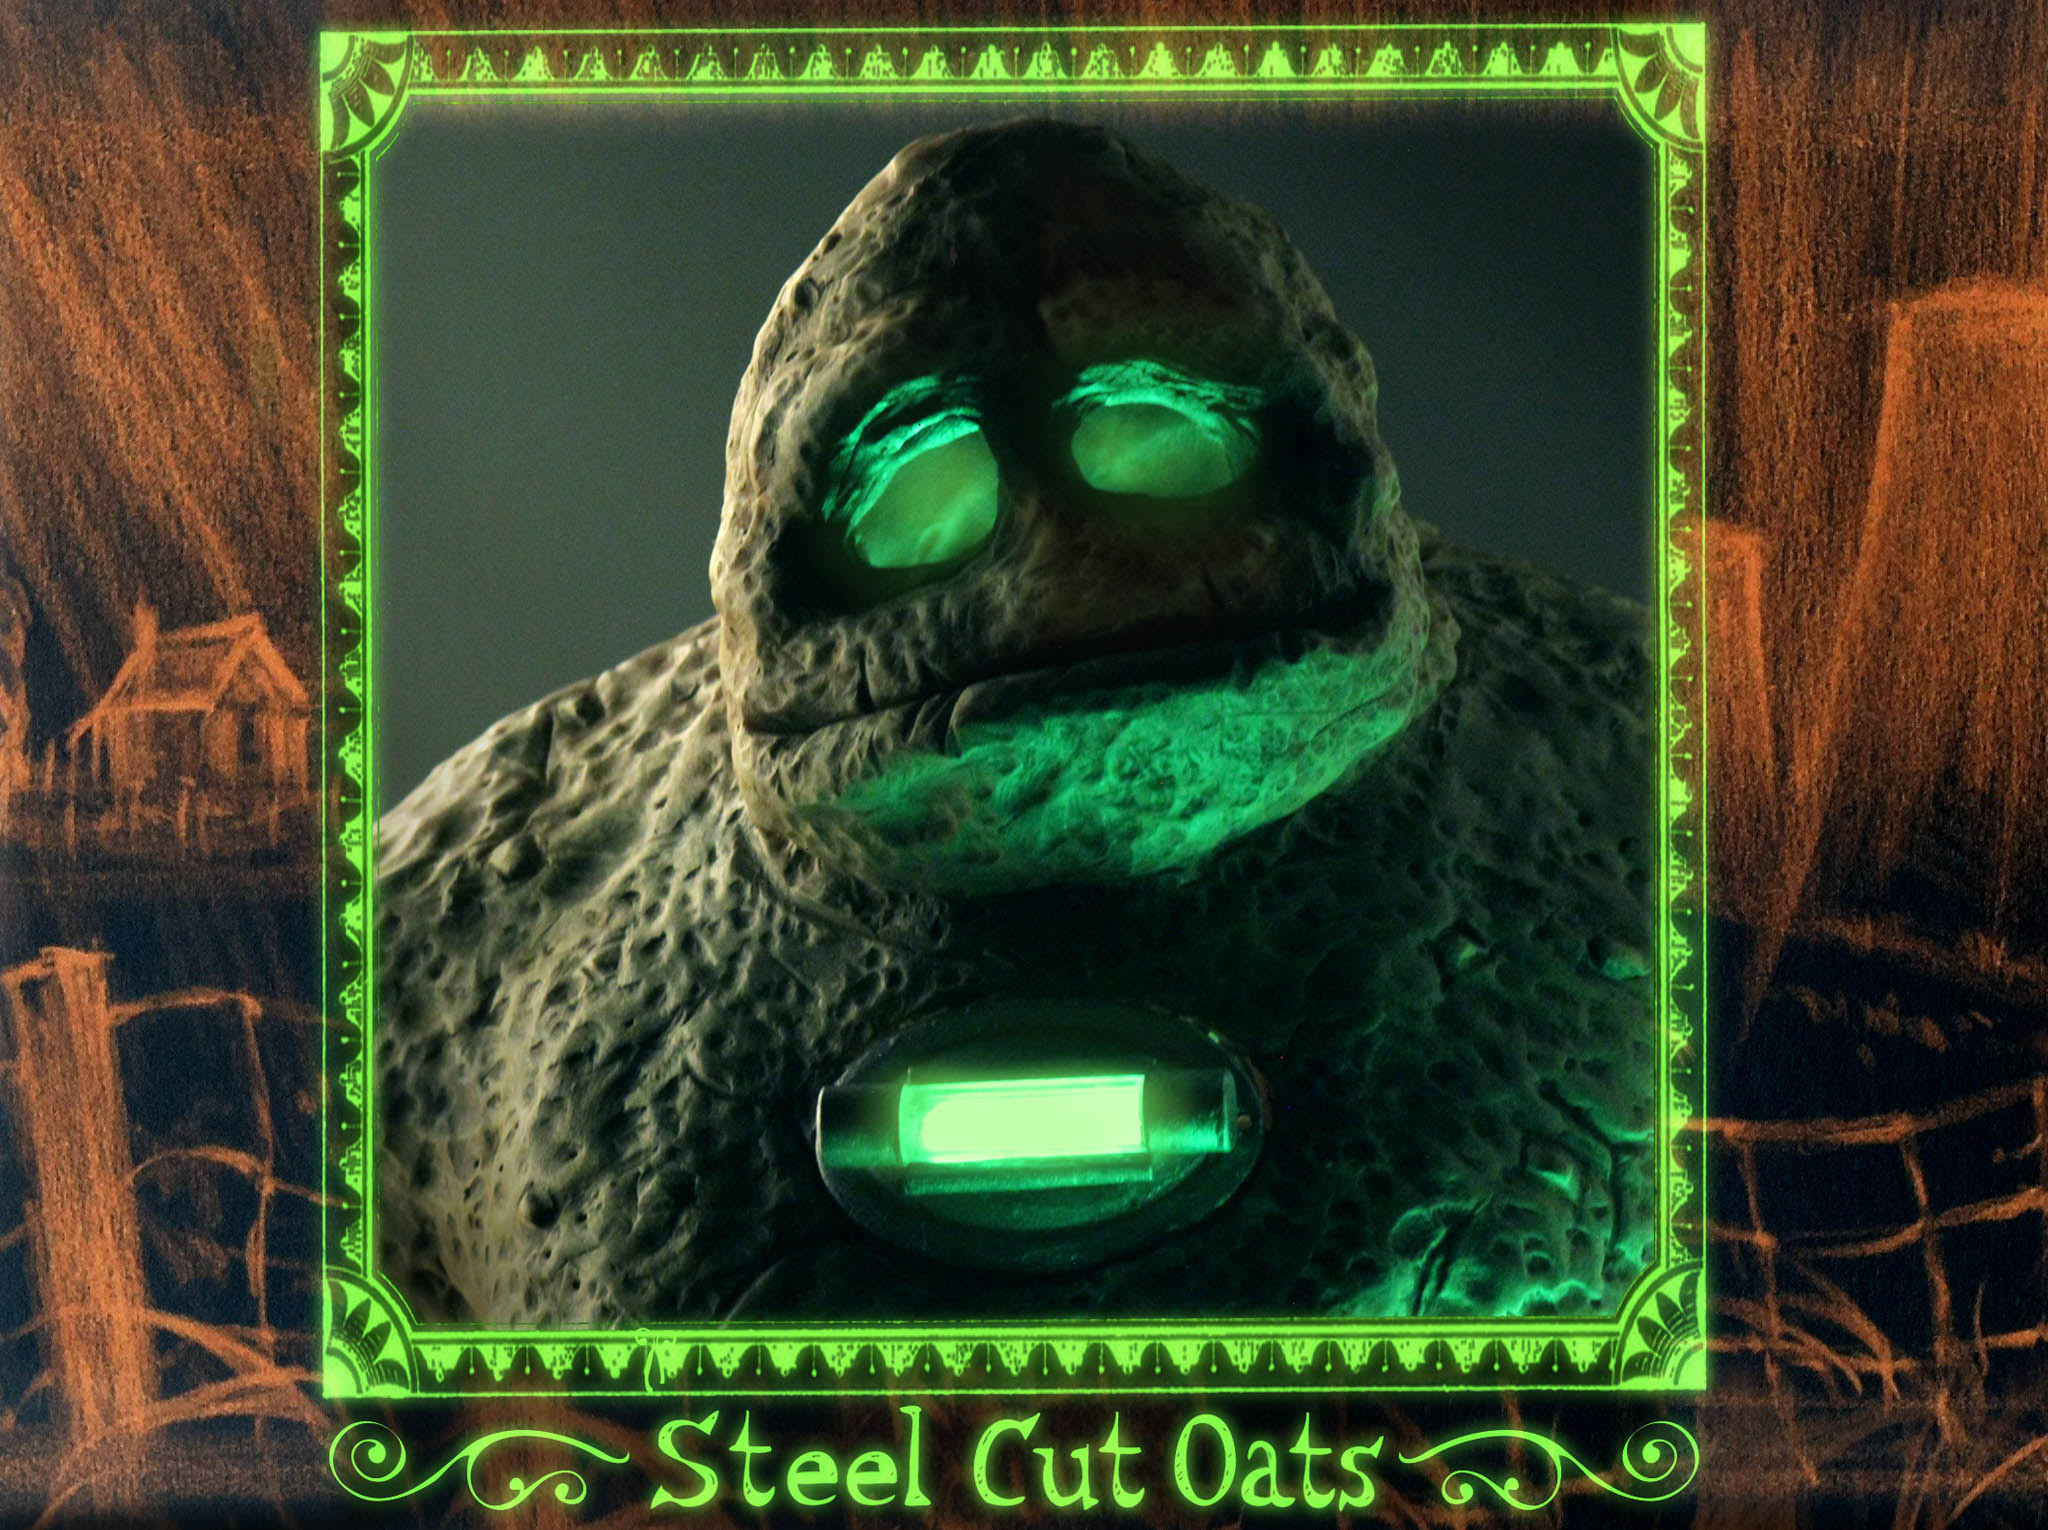 Steel Cut Oats : A film by Harry Chaskin     Click on the link above to check out the Kickstarter campaign that was used to get funding for the movie, including a lot of fun updates, crew bios, and behind the scenes stuff.